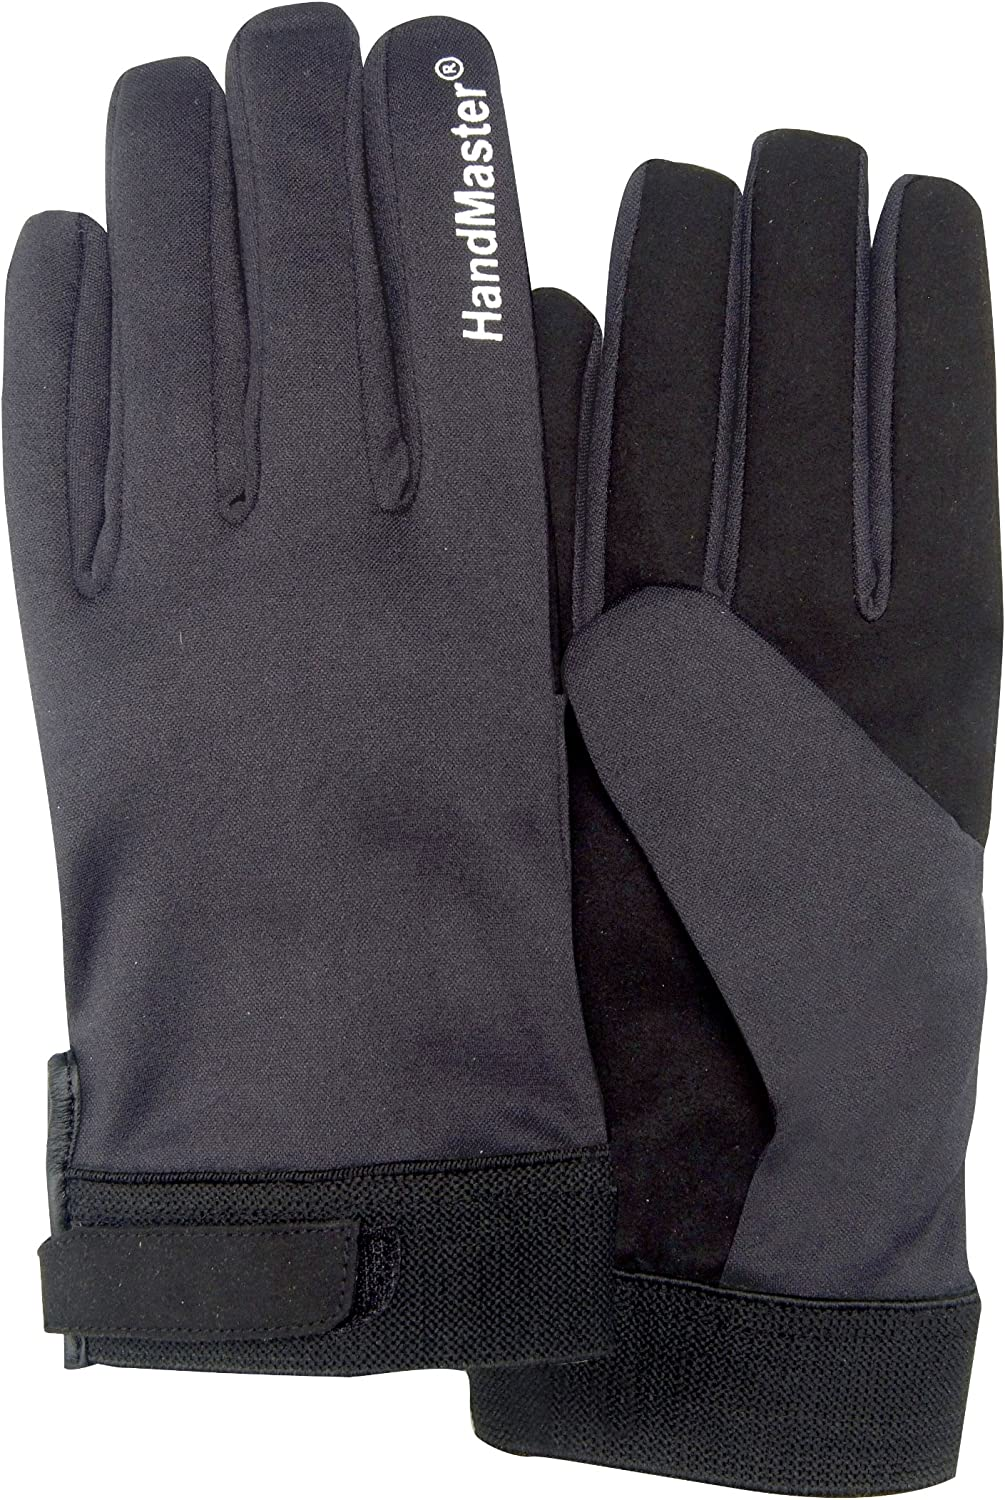 Mens Large Magid T250VT WorkGrade Synthetic Leather Palm Glove